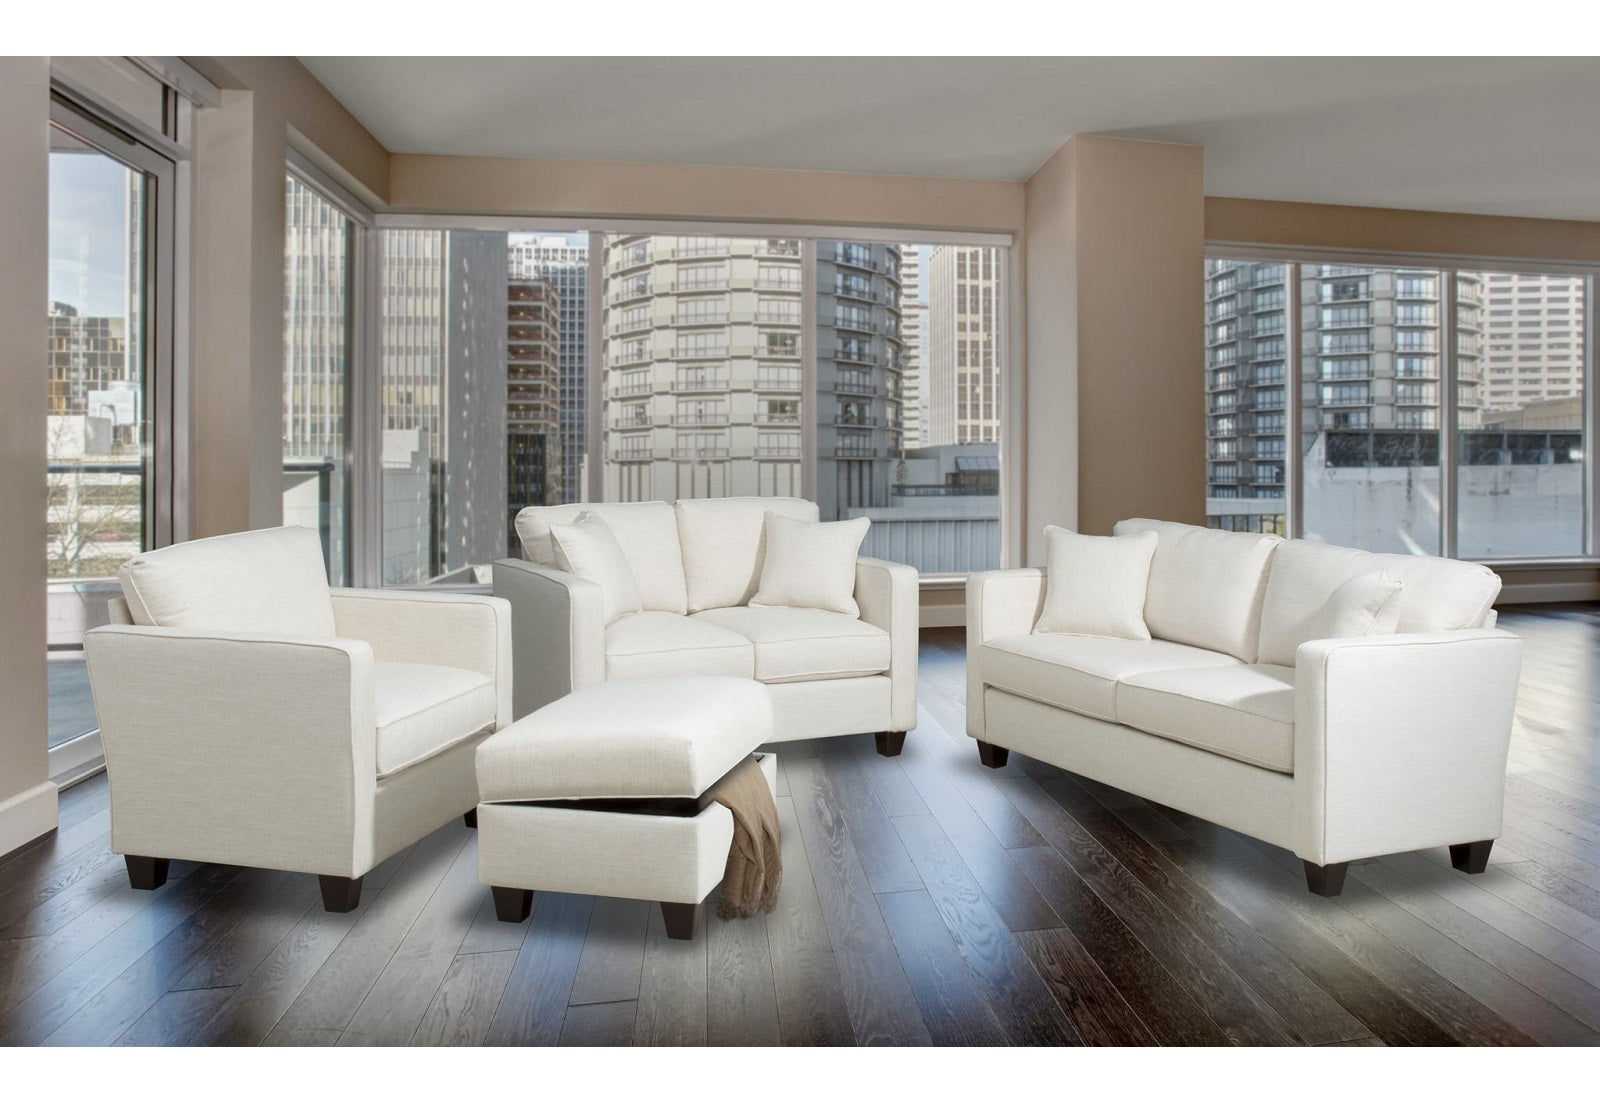 Luxury Apartment Furniture Packages - Enhance Your Space | Swift